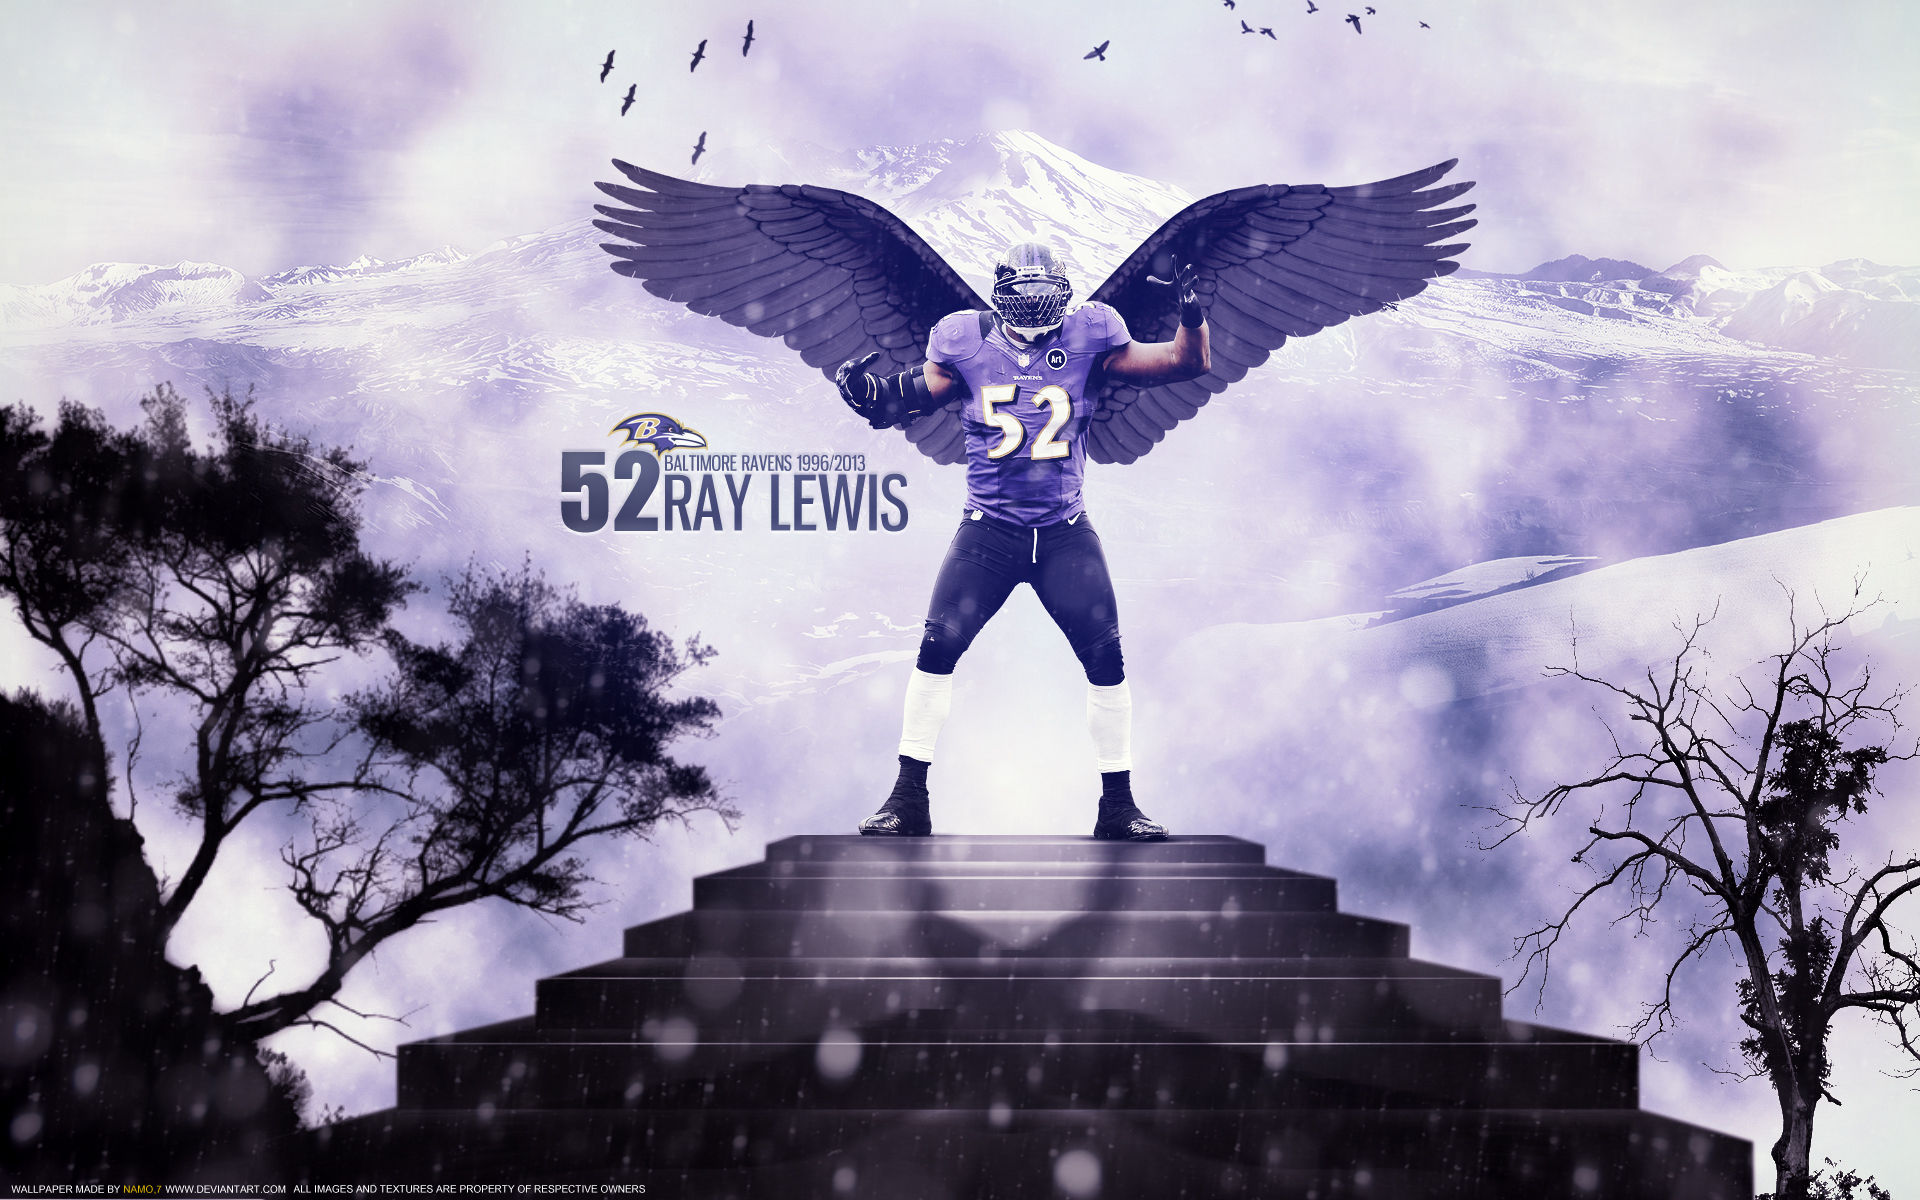 Baltimore Ravens Ray Lewis Quotes: Thrilling Thursday Special Edition